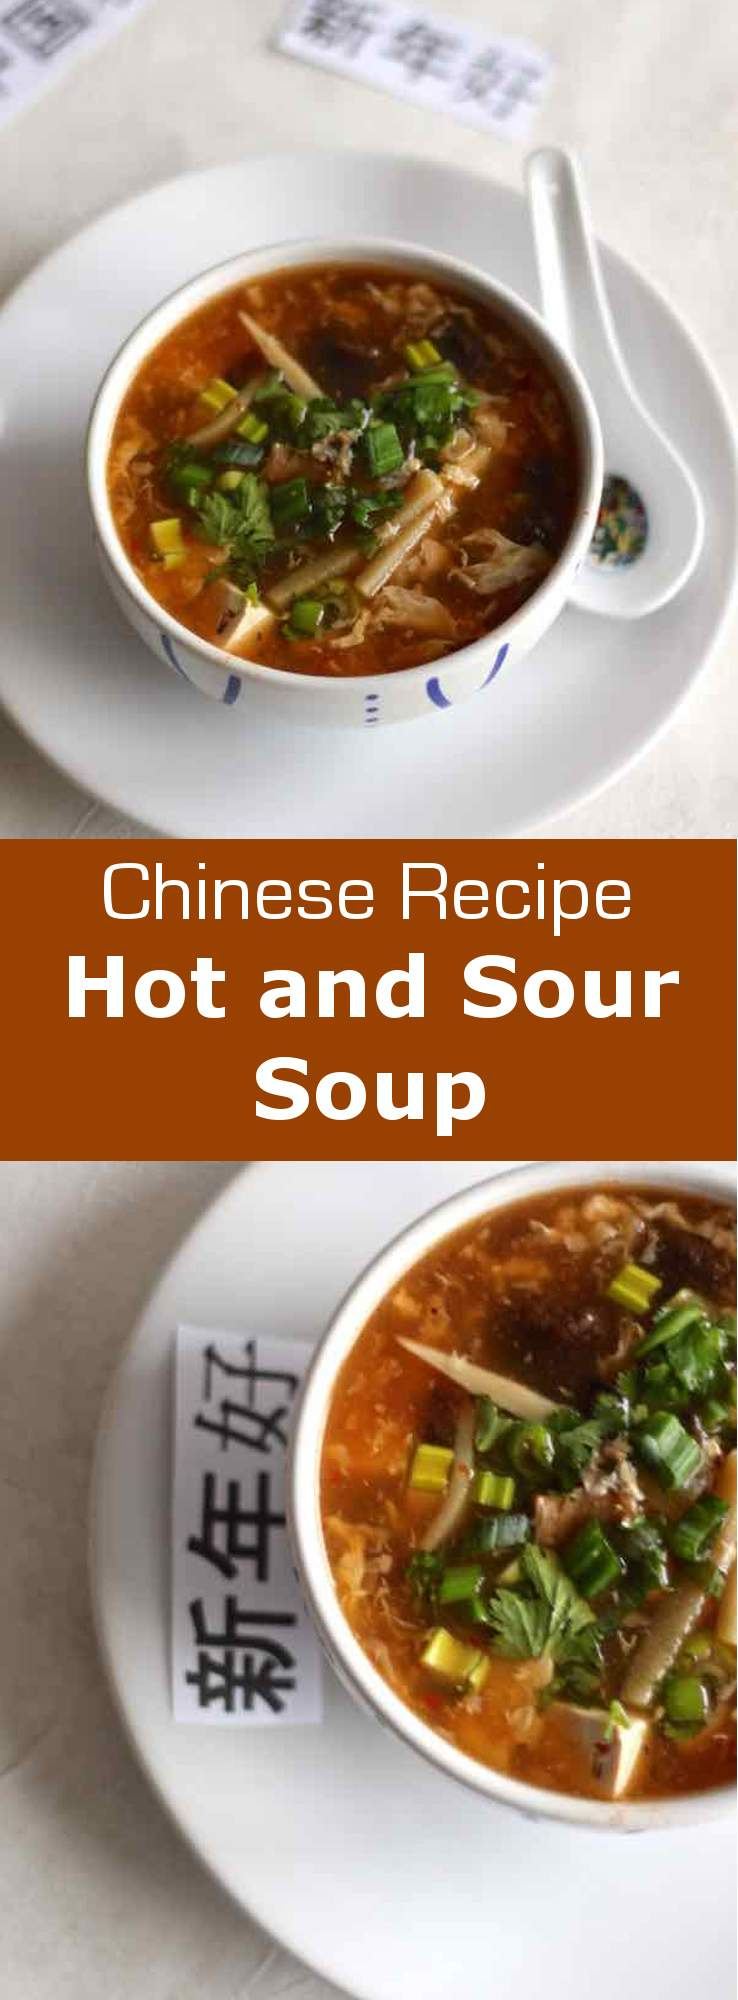 Hot and Sour Soup - Traditional Chinese Recipe | 196 flavors